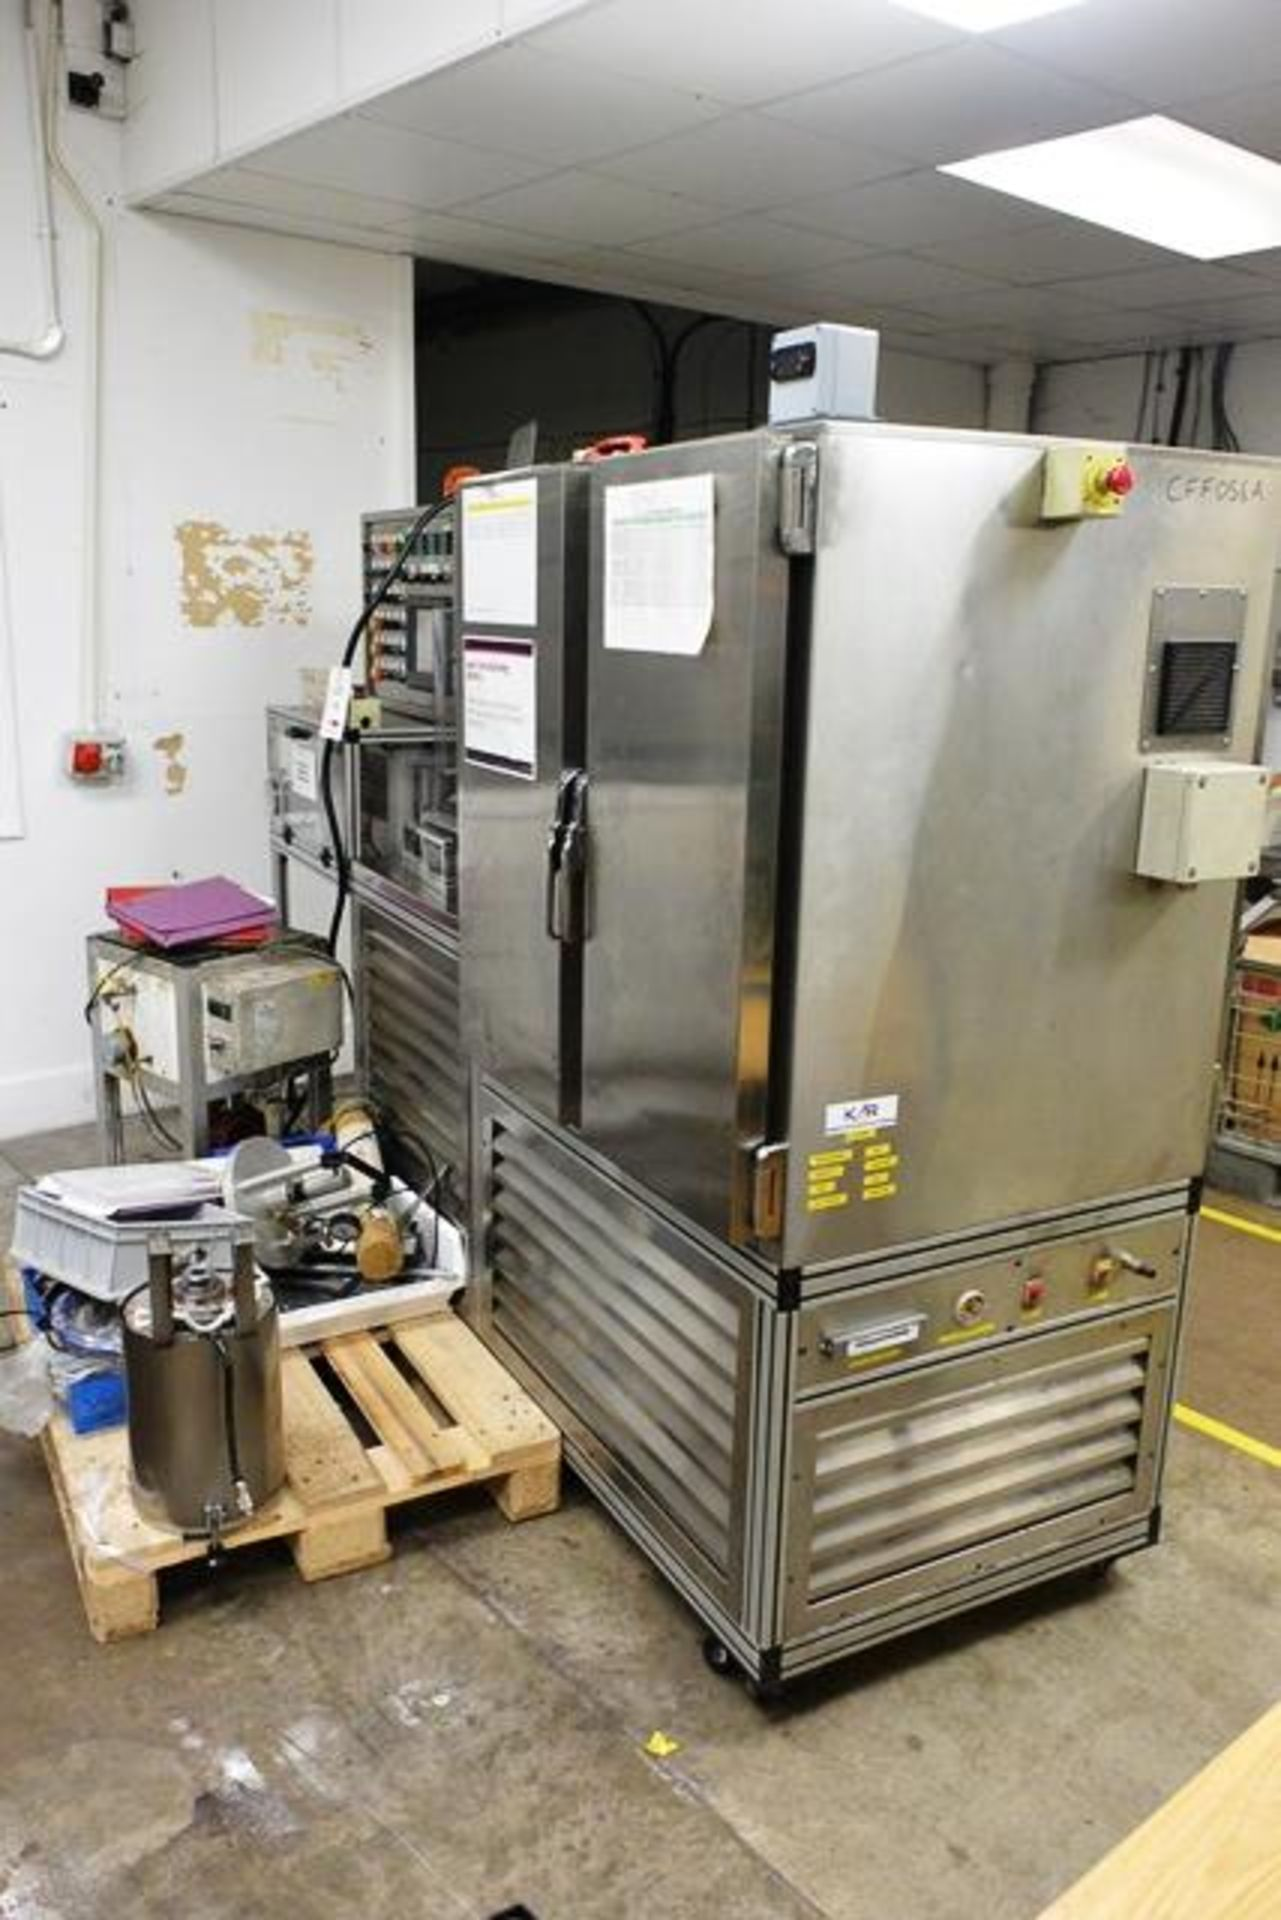 Yo-Hau stainless steel filling machine, type L85ND3, with mould preheat and 4-door/twin side chiller - Image 7 of 9